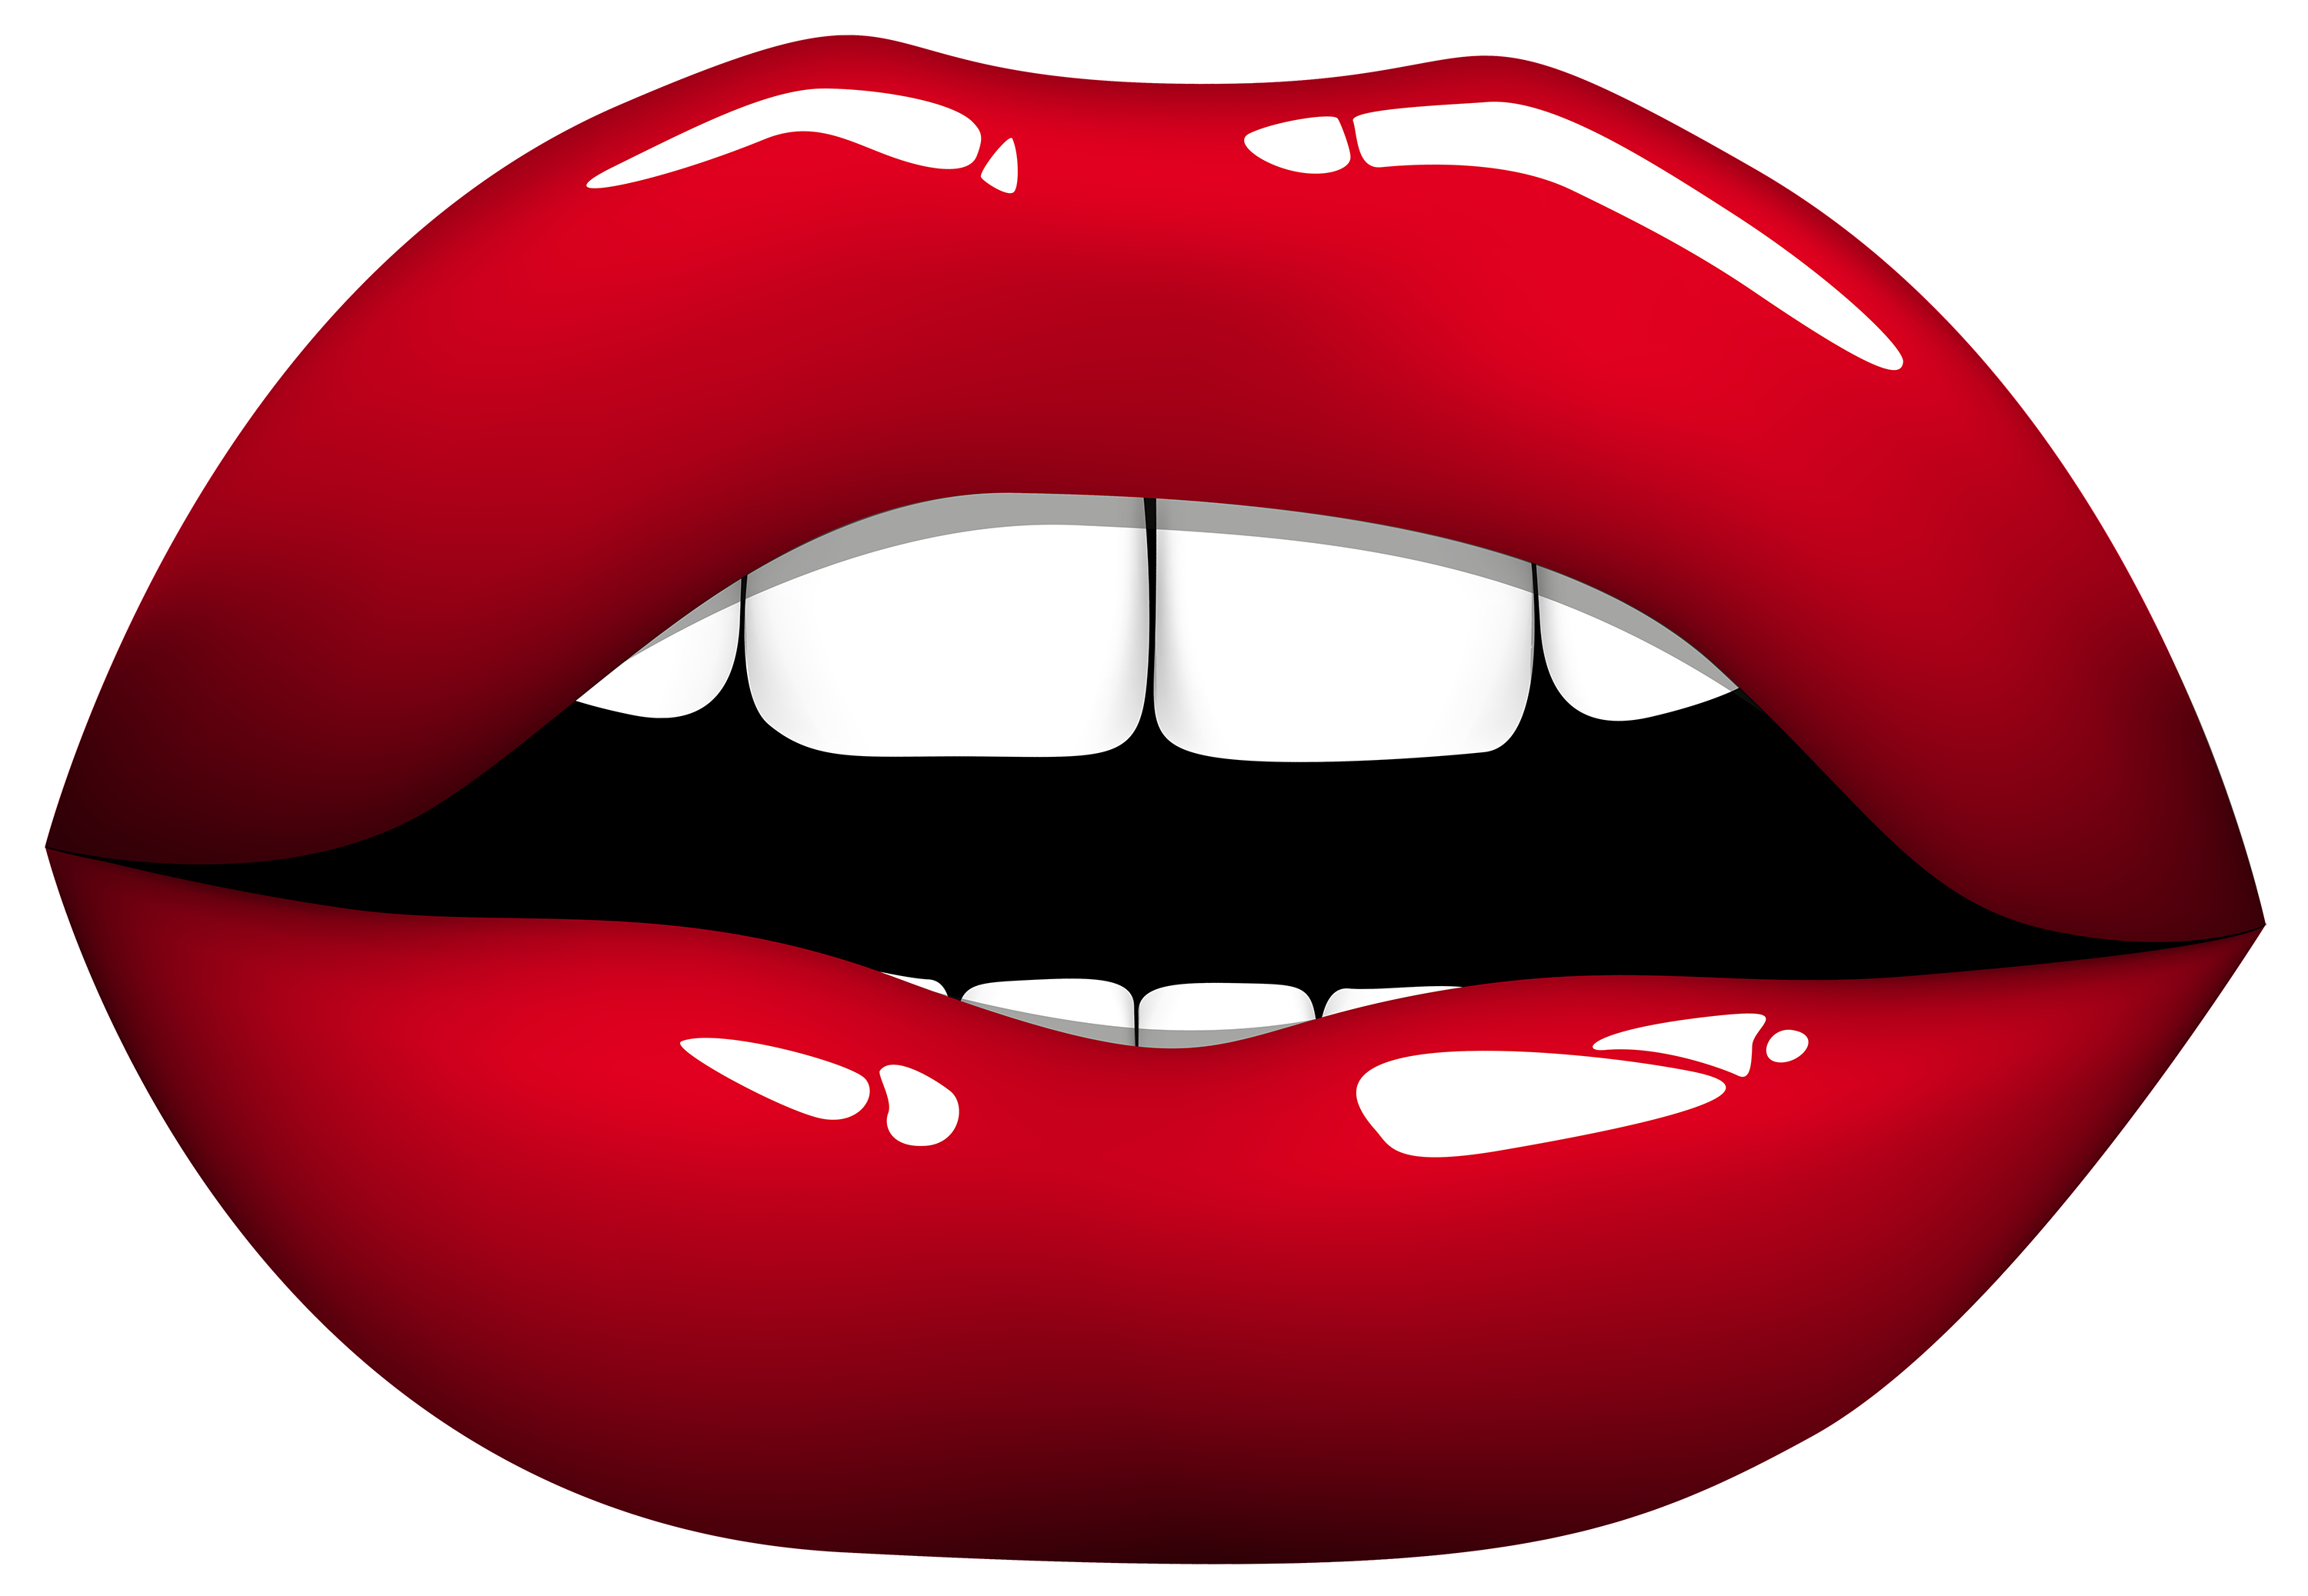 png black and white download Lipstick clipart object. Red lips png best.